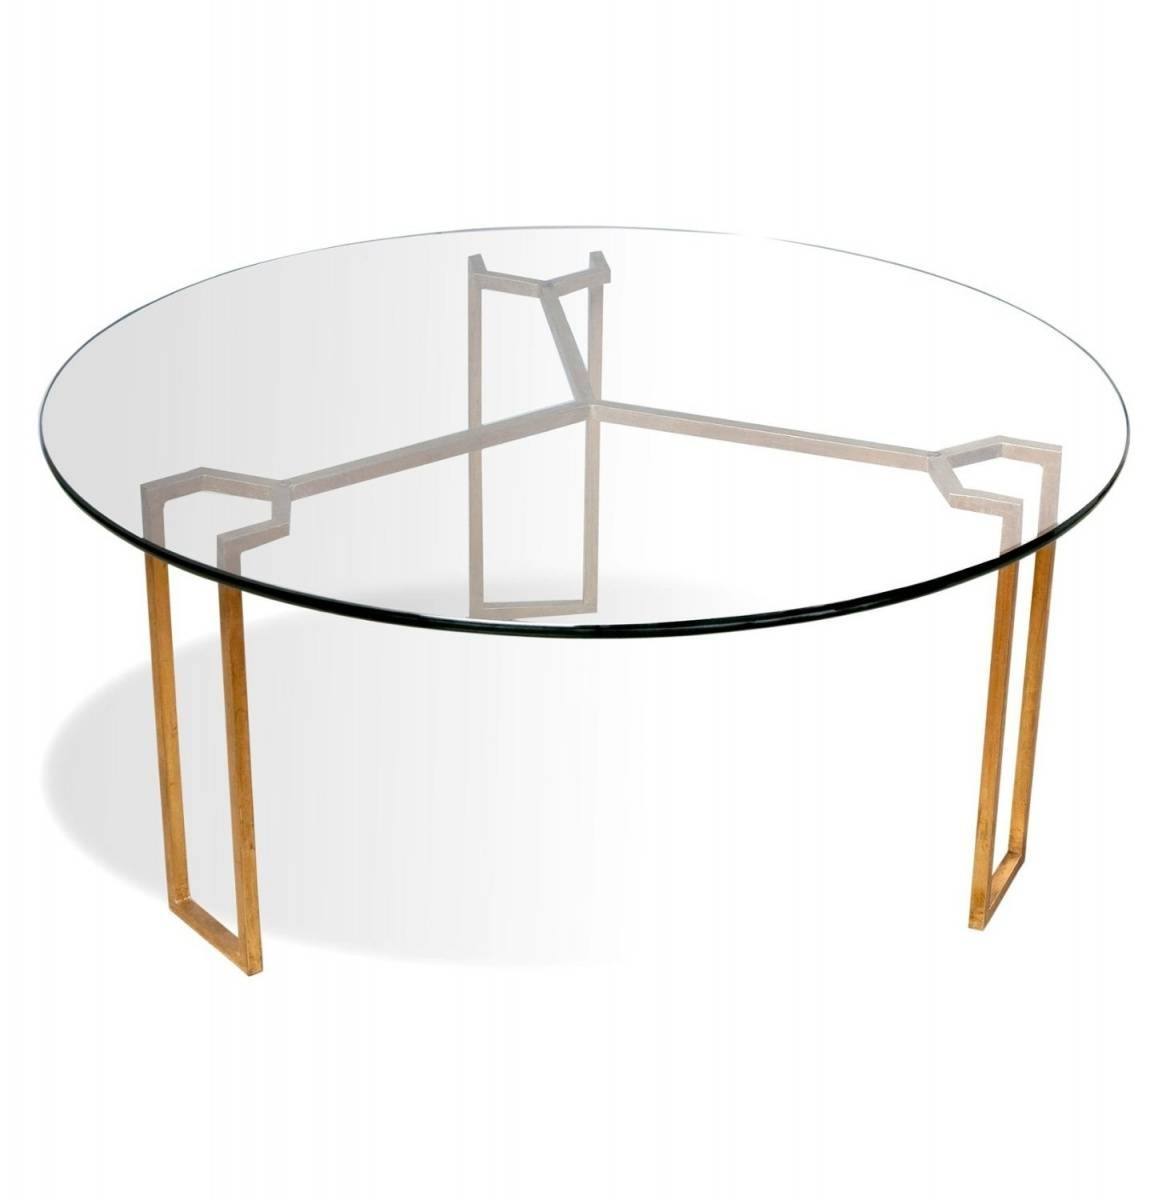 Coffee Table : Glass Round Coffee Tables Small Round Glass Coffee with regard to Round Glass Coffee Tables (Image 4 of 30)